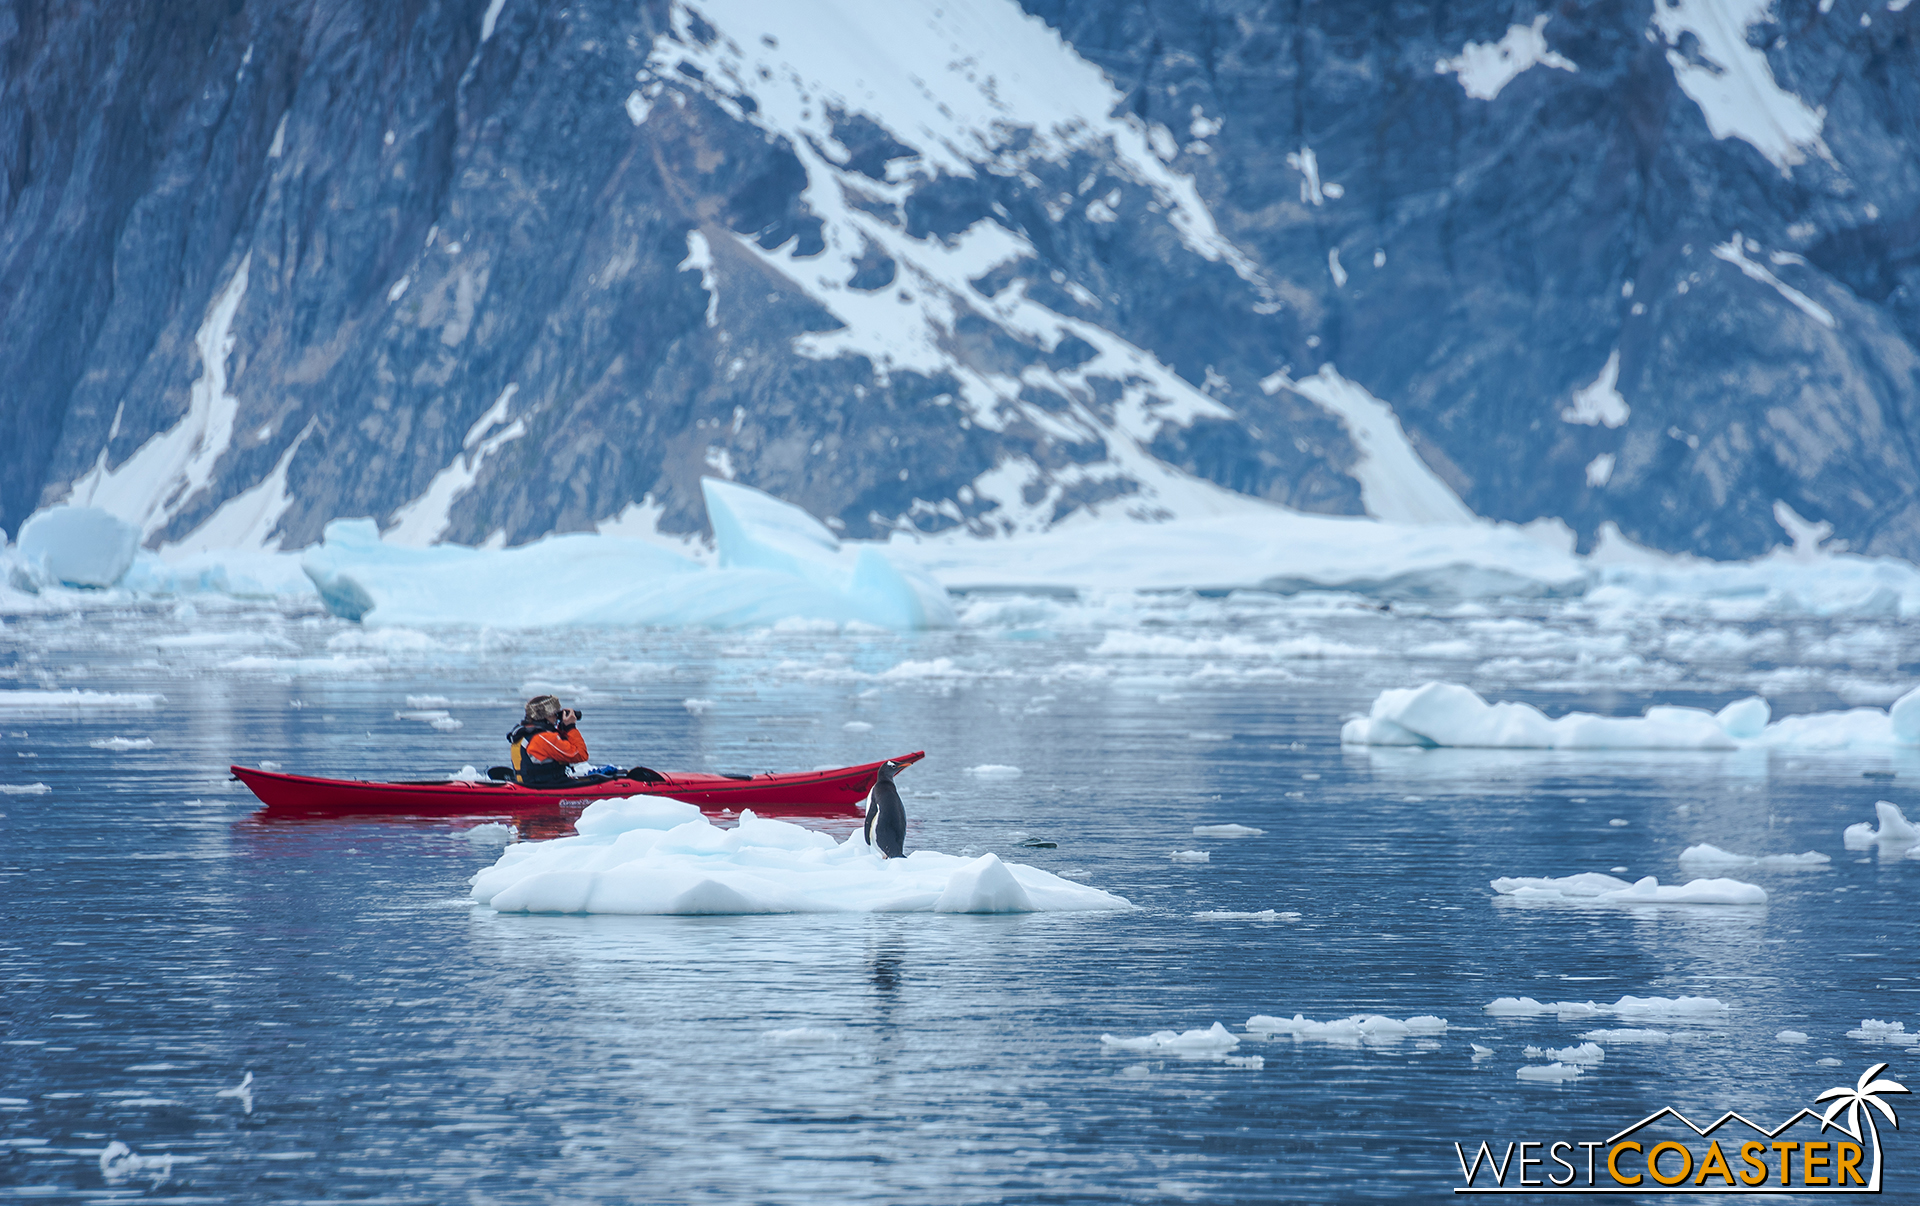 A penguin checks out what a kayaker is photographing.